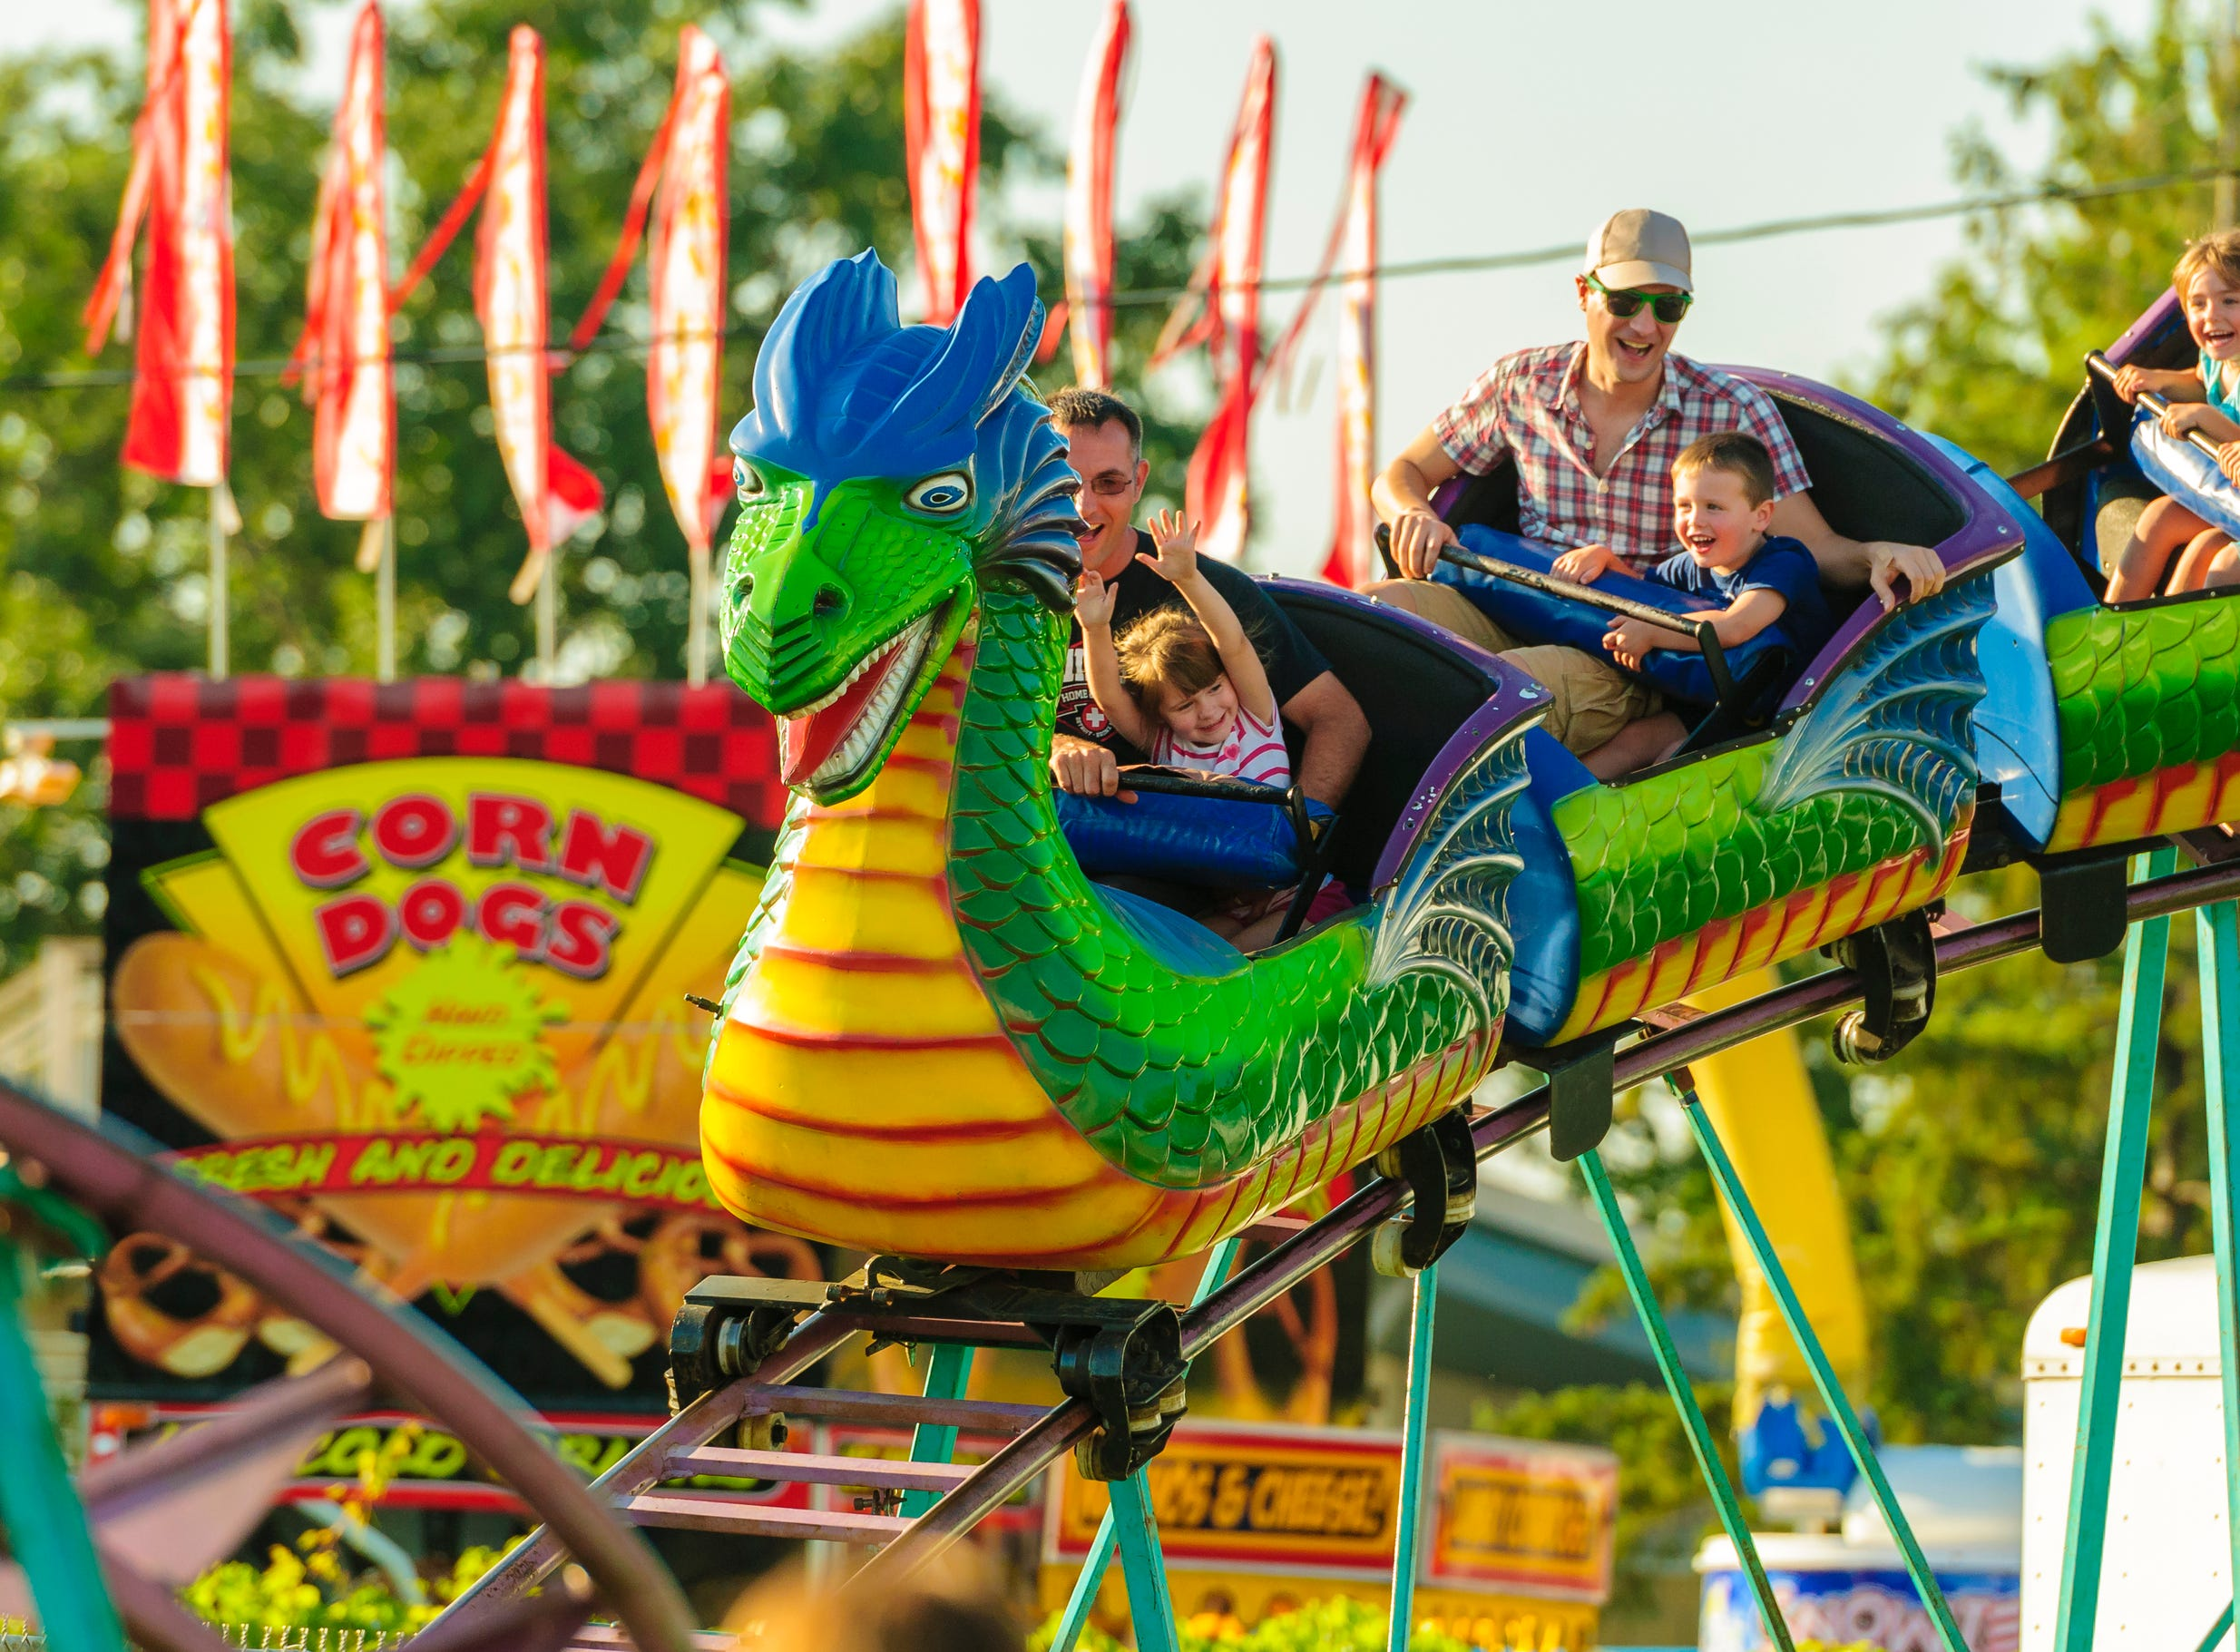 The Dragon Coaster is one of four retro-themed rides that will invited visitors to relive memories at Clementon Park this season.